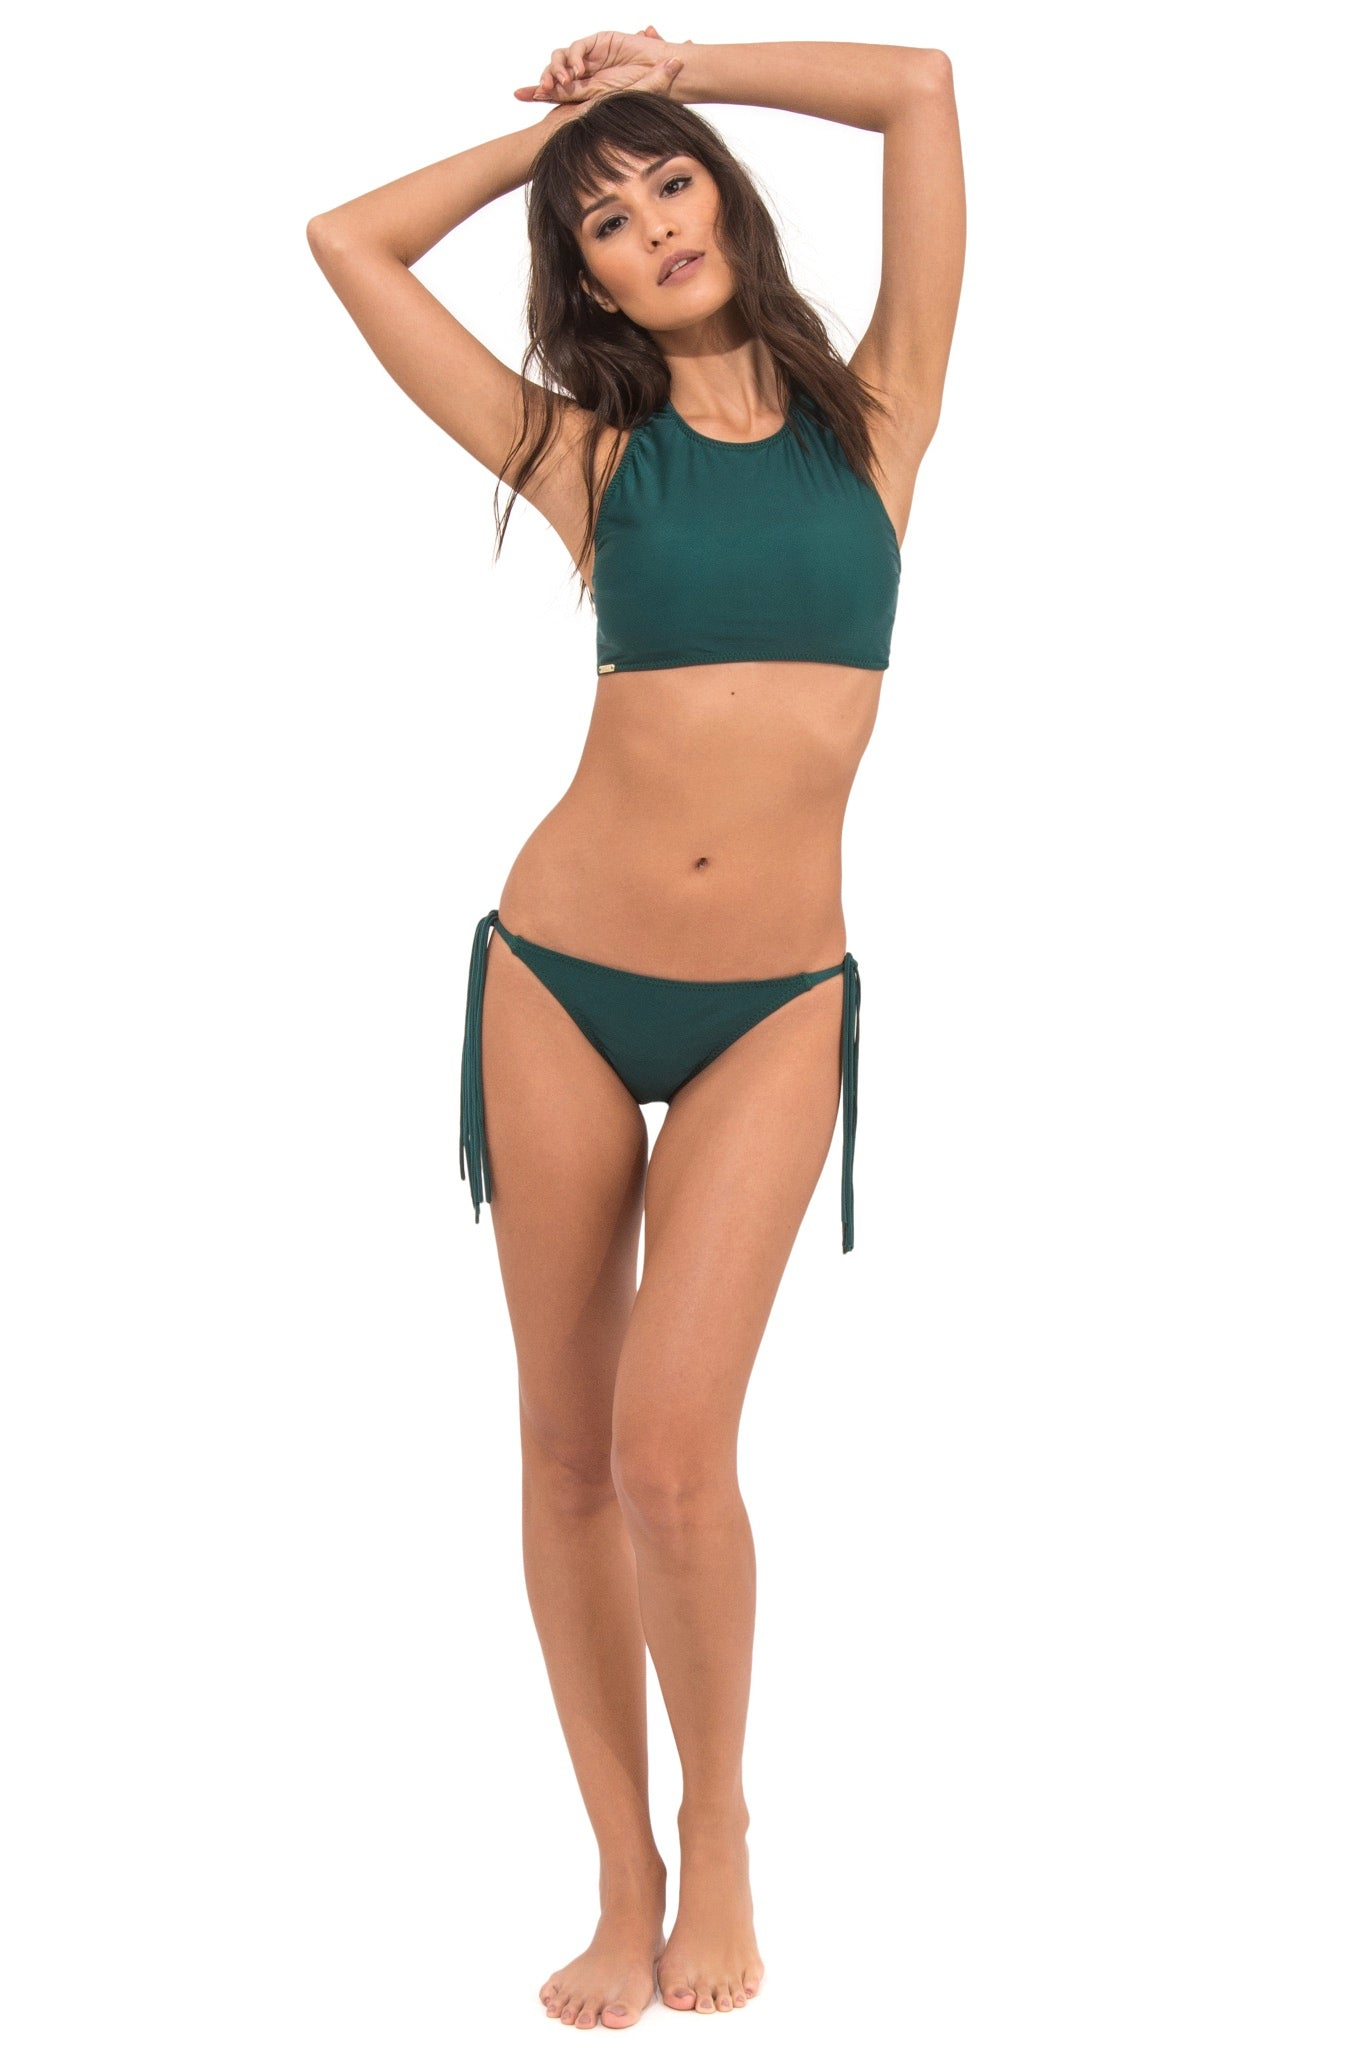 a56bb3544f390 LICHIA GREEN HIGH NECK BIKINI TOP | MAMÉDIO SWIM S/S 2018